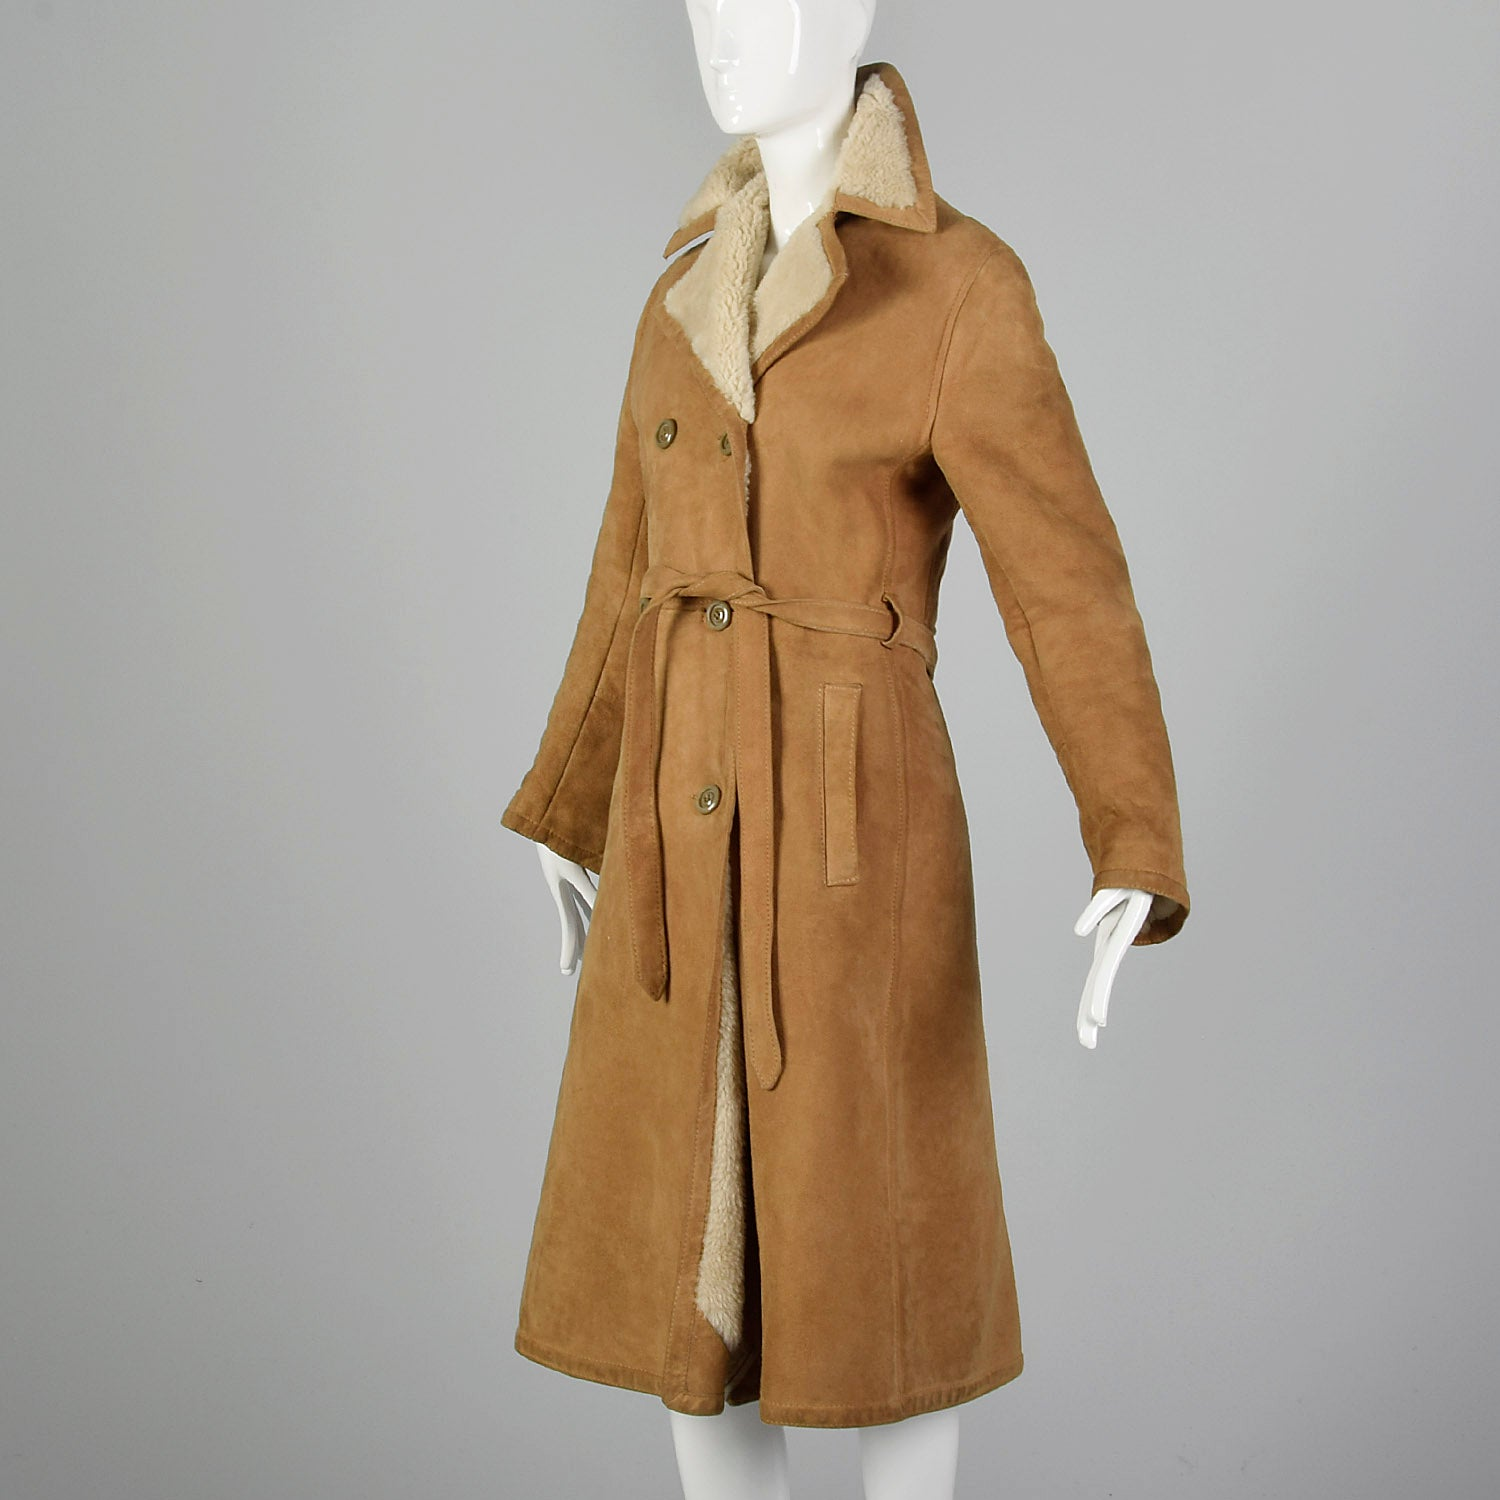 1970s Saks Fifth Avenue Sheepskin Coat